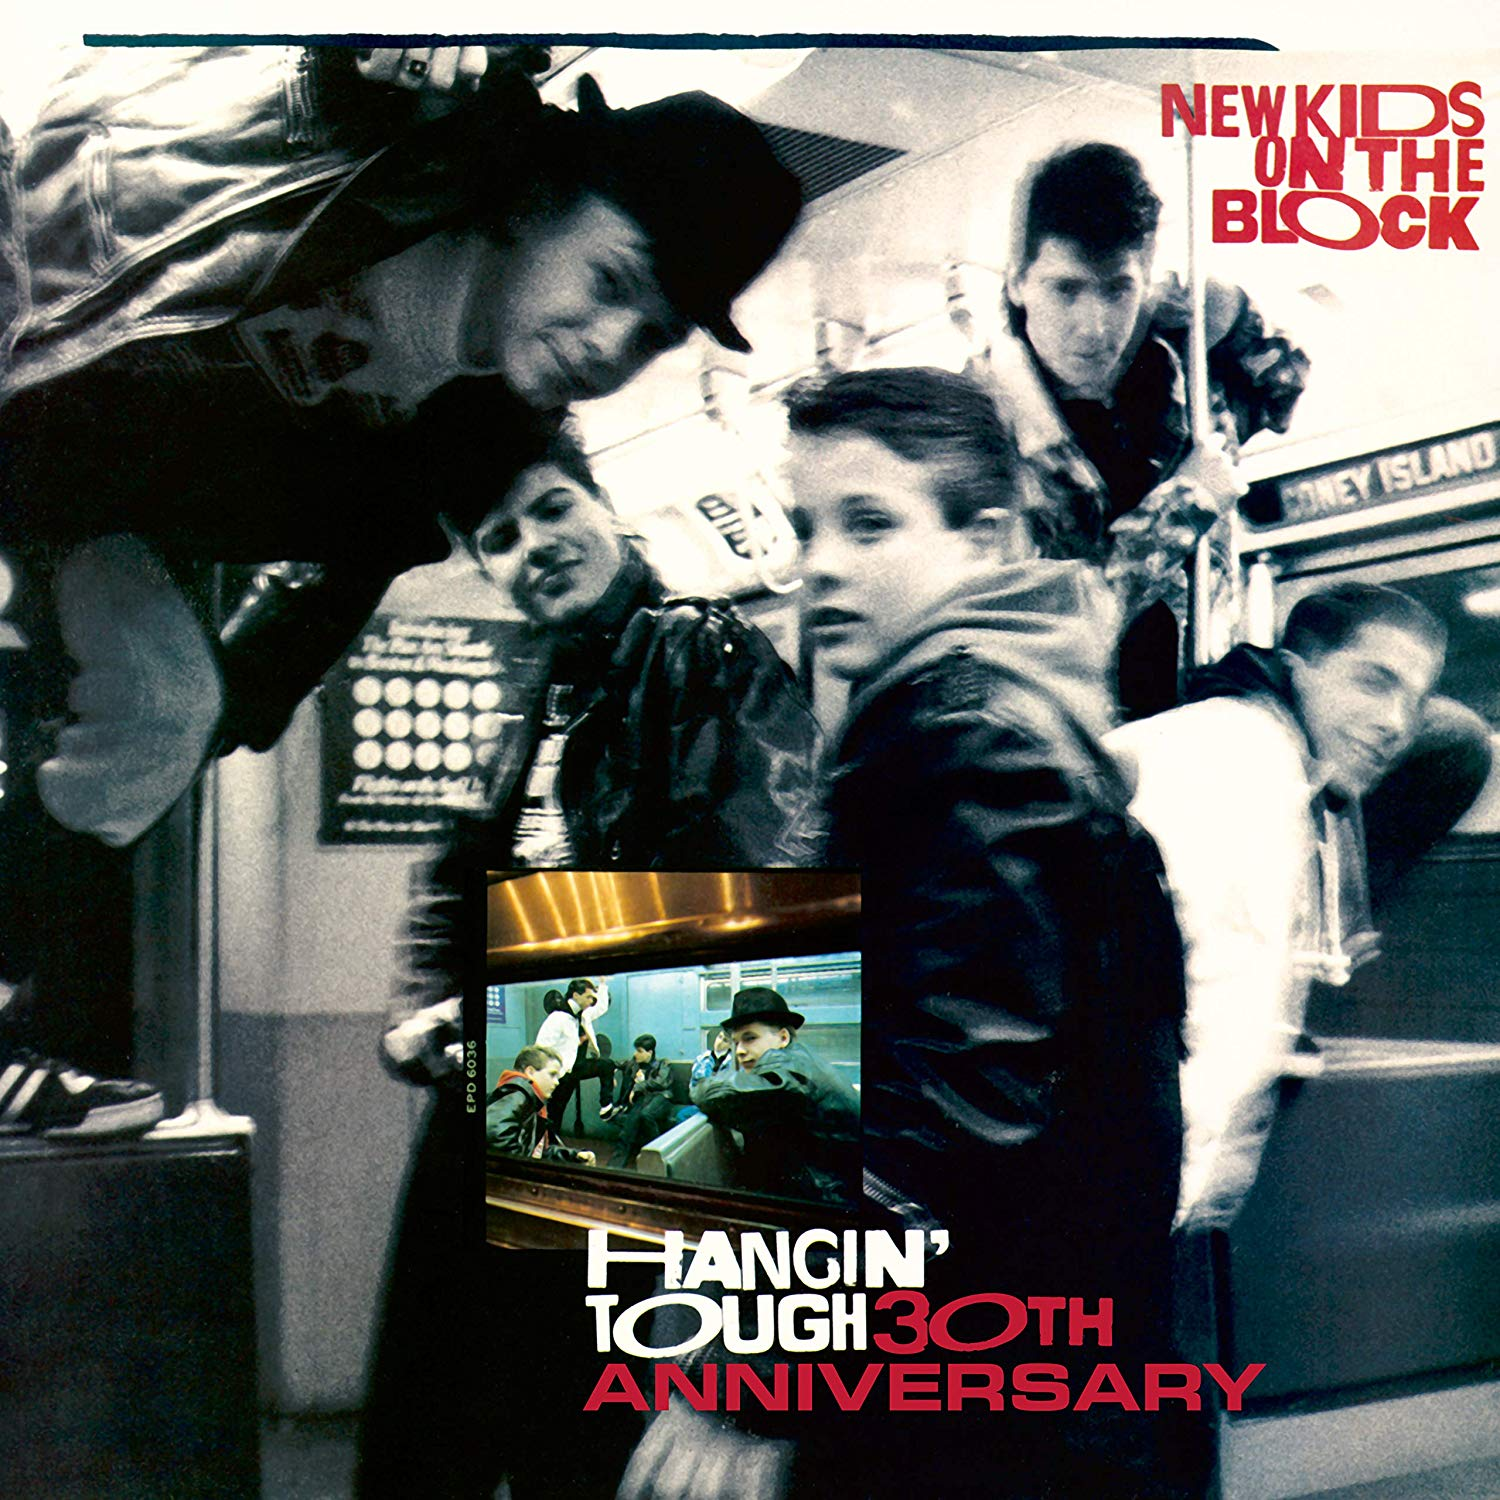 New Kids on the Block - Hangin' Tough (30th Anniversary